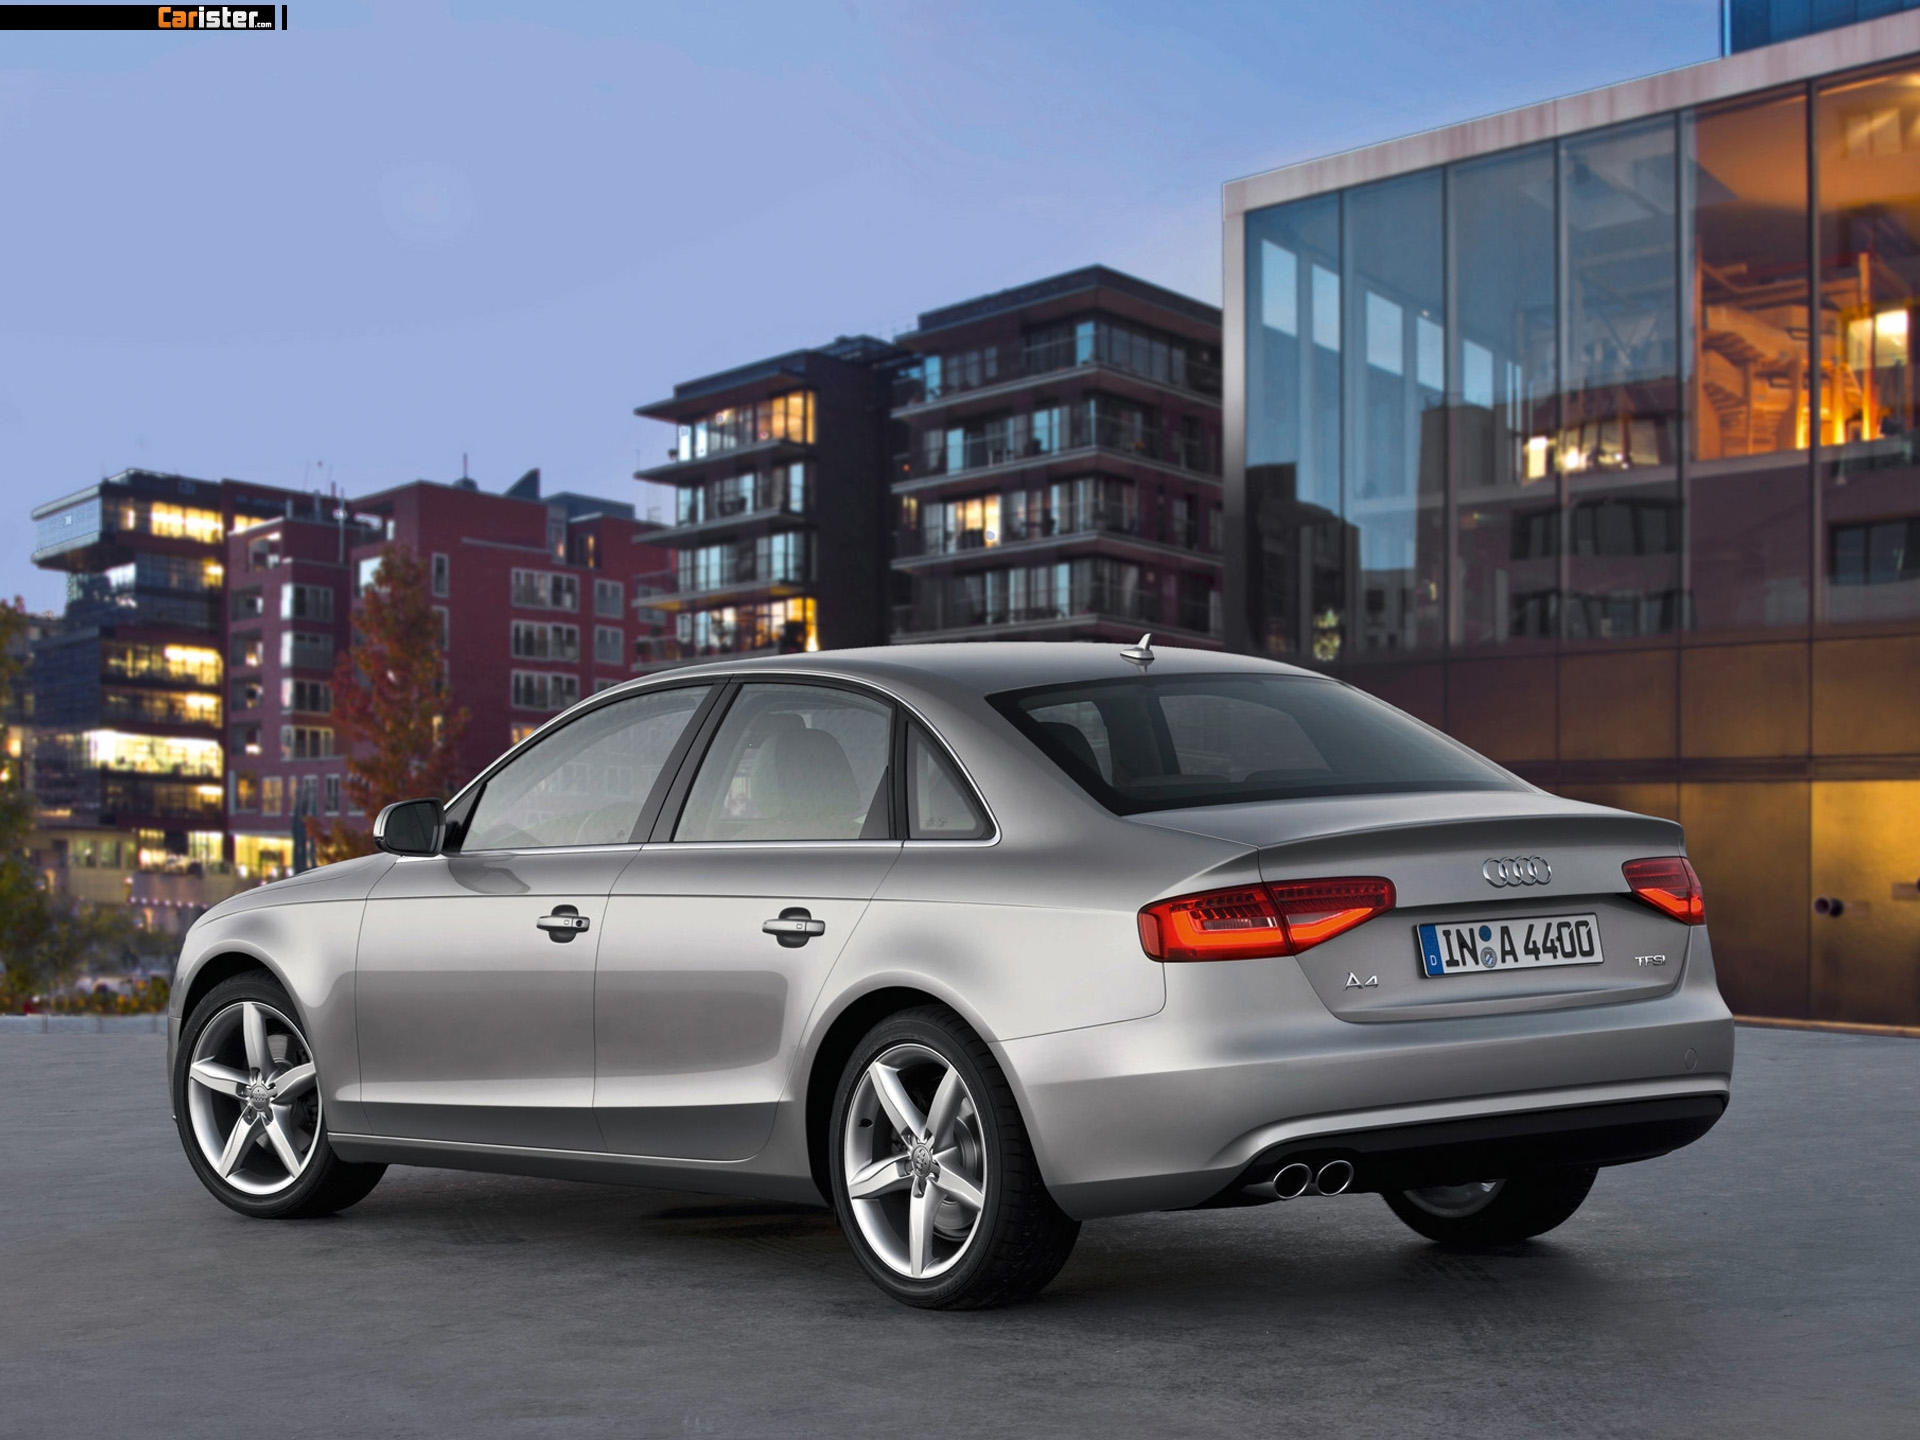 Audi A4 2012 - Photo 20 - Taille: 1920x1440